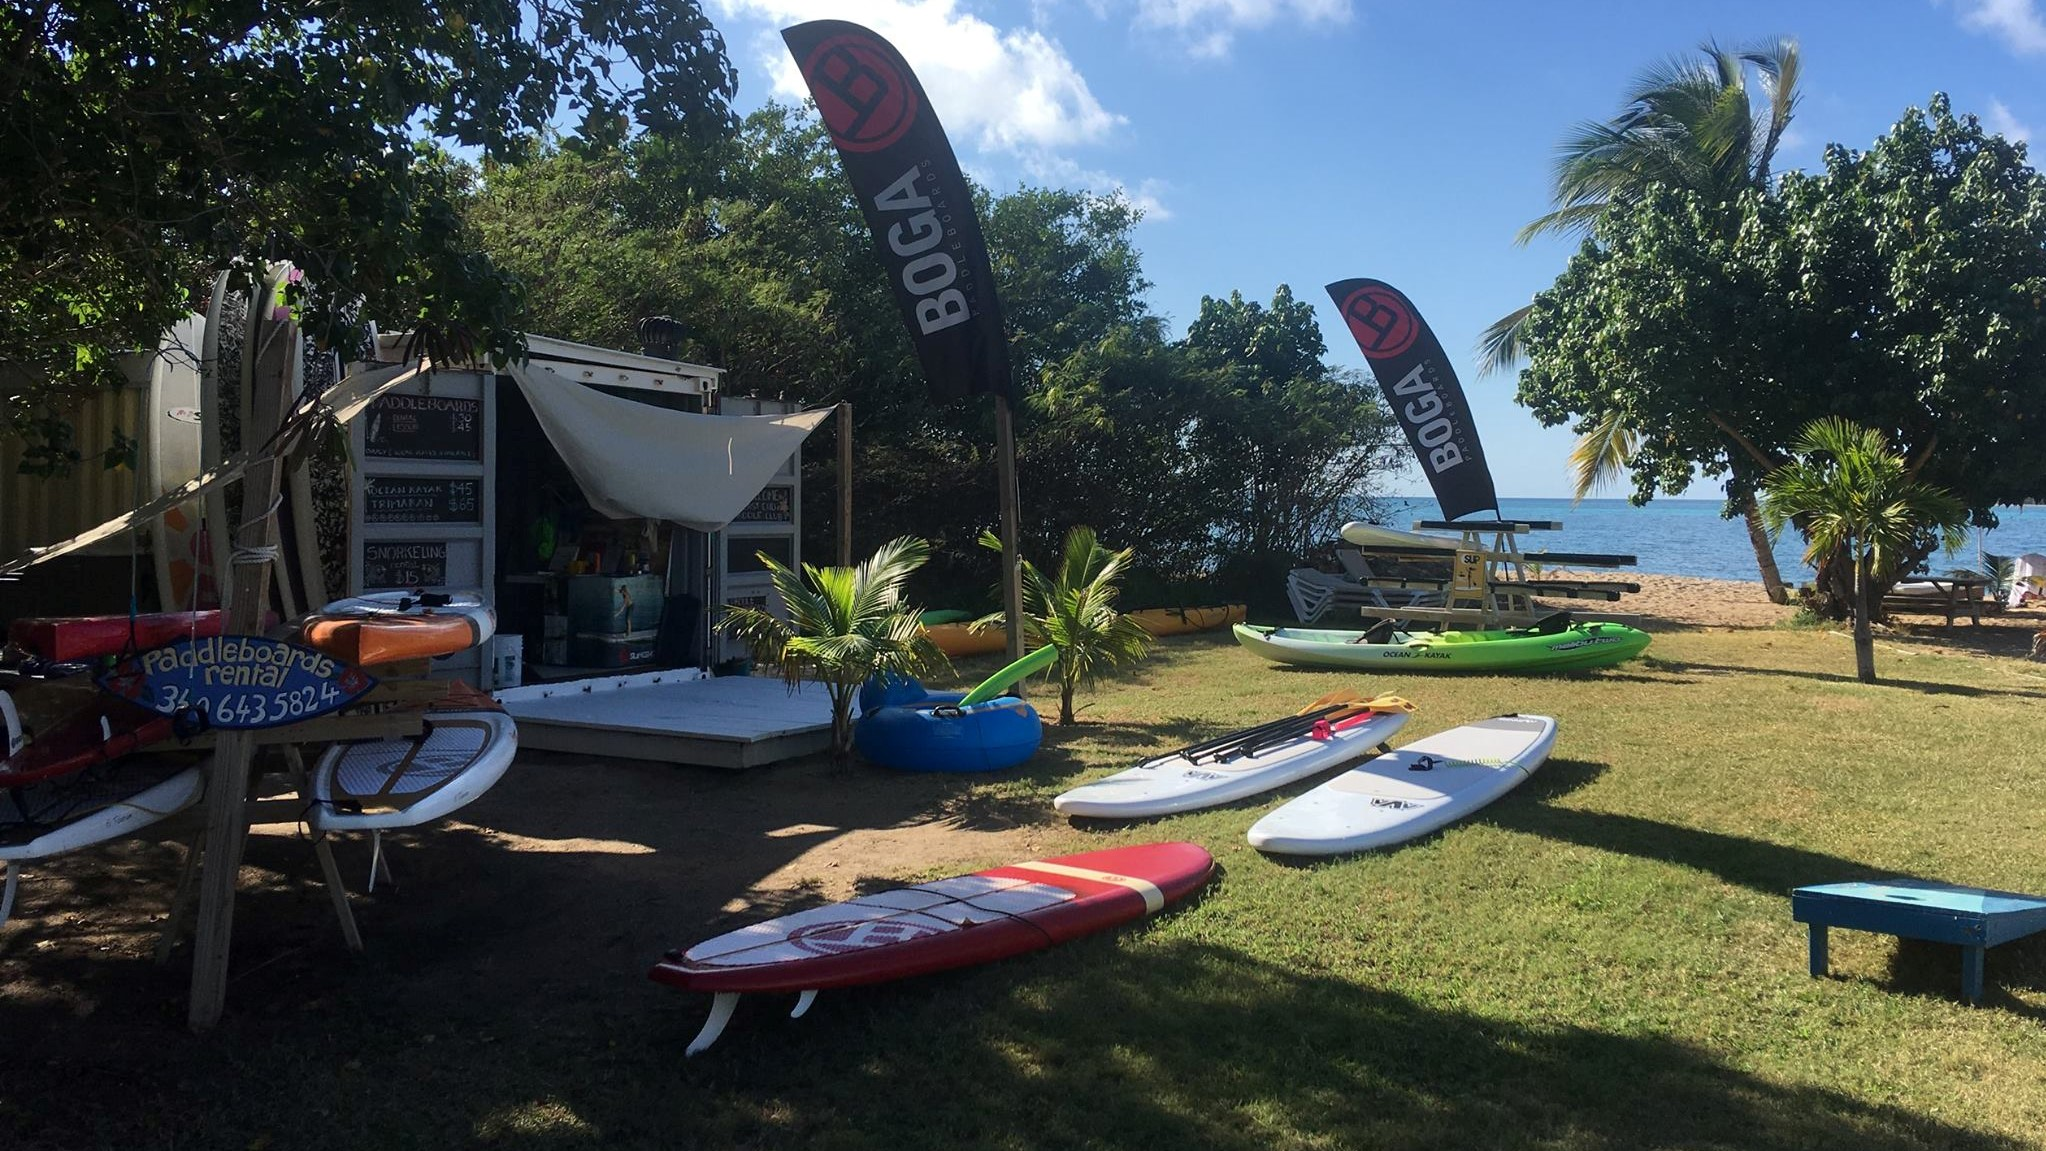 store you board with Kite st croix in the usvi